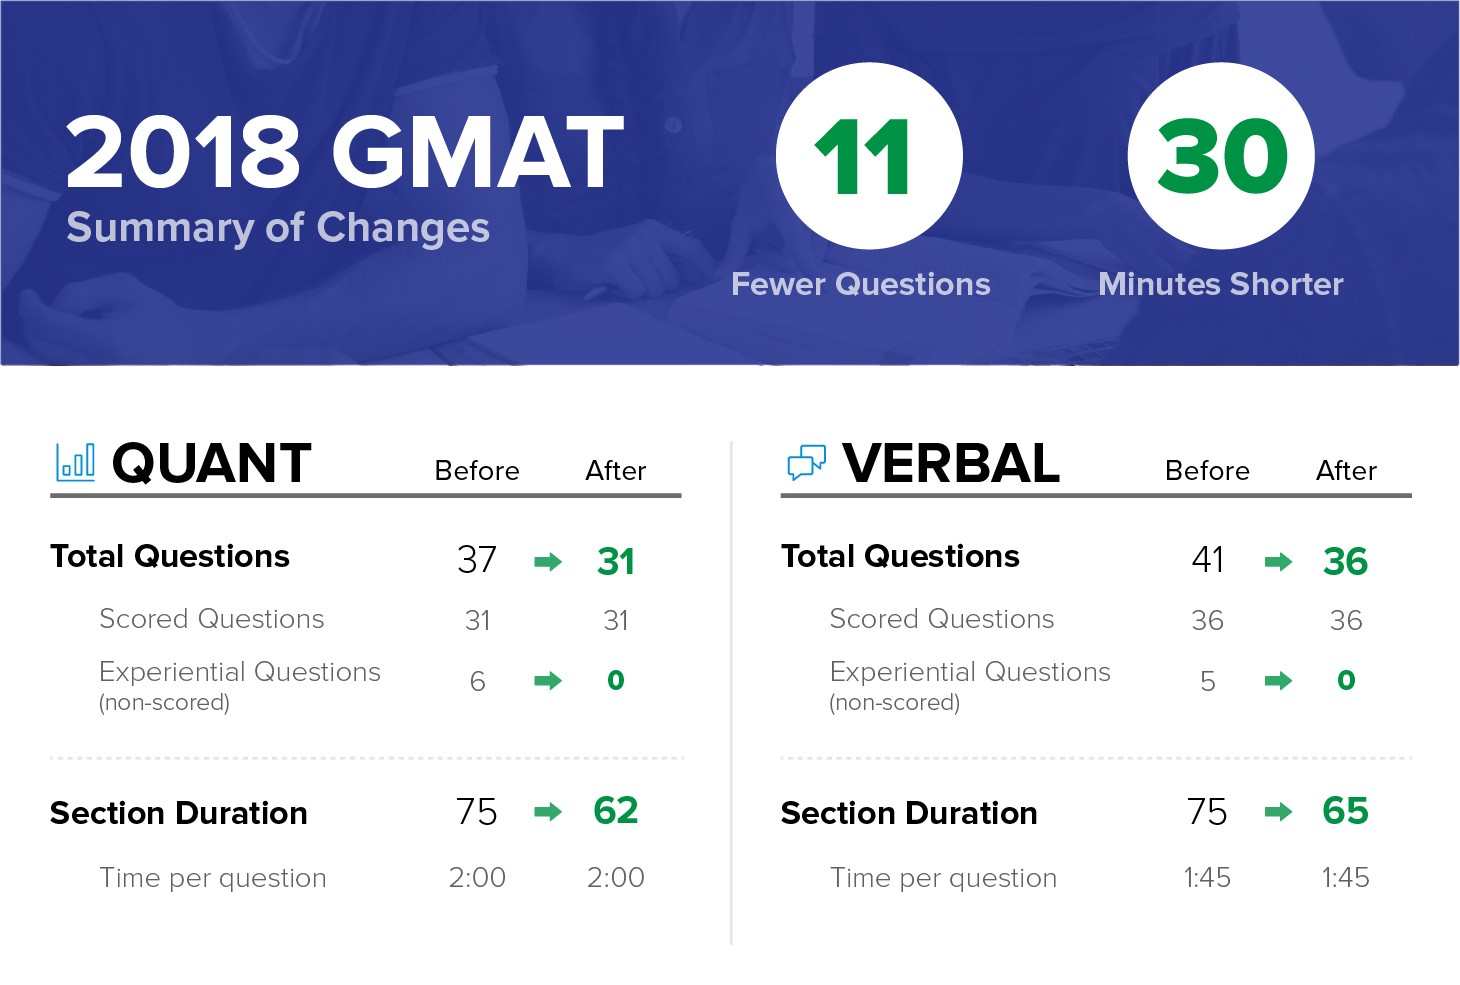 2018-gmat-changes-infographic